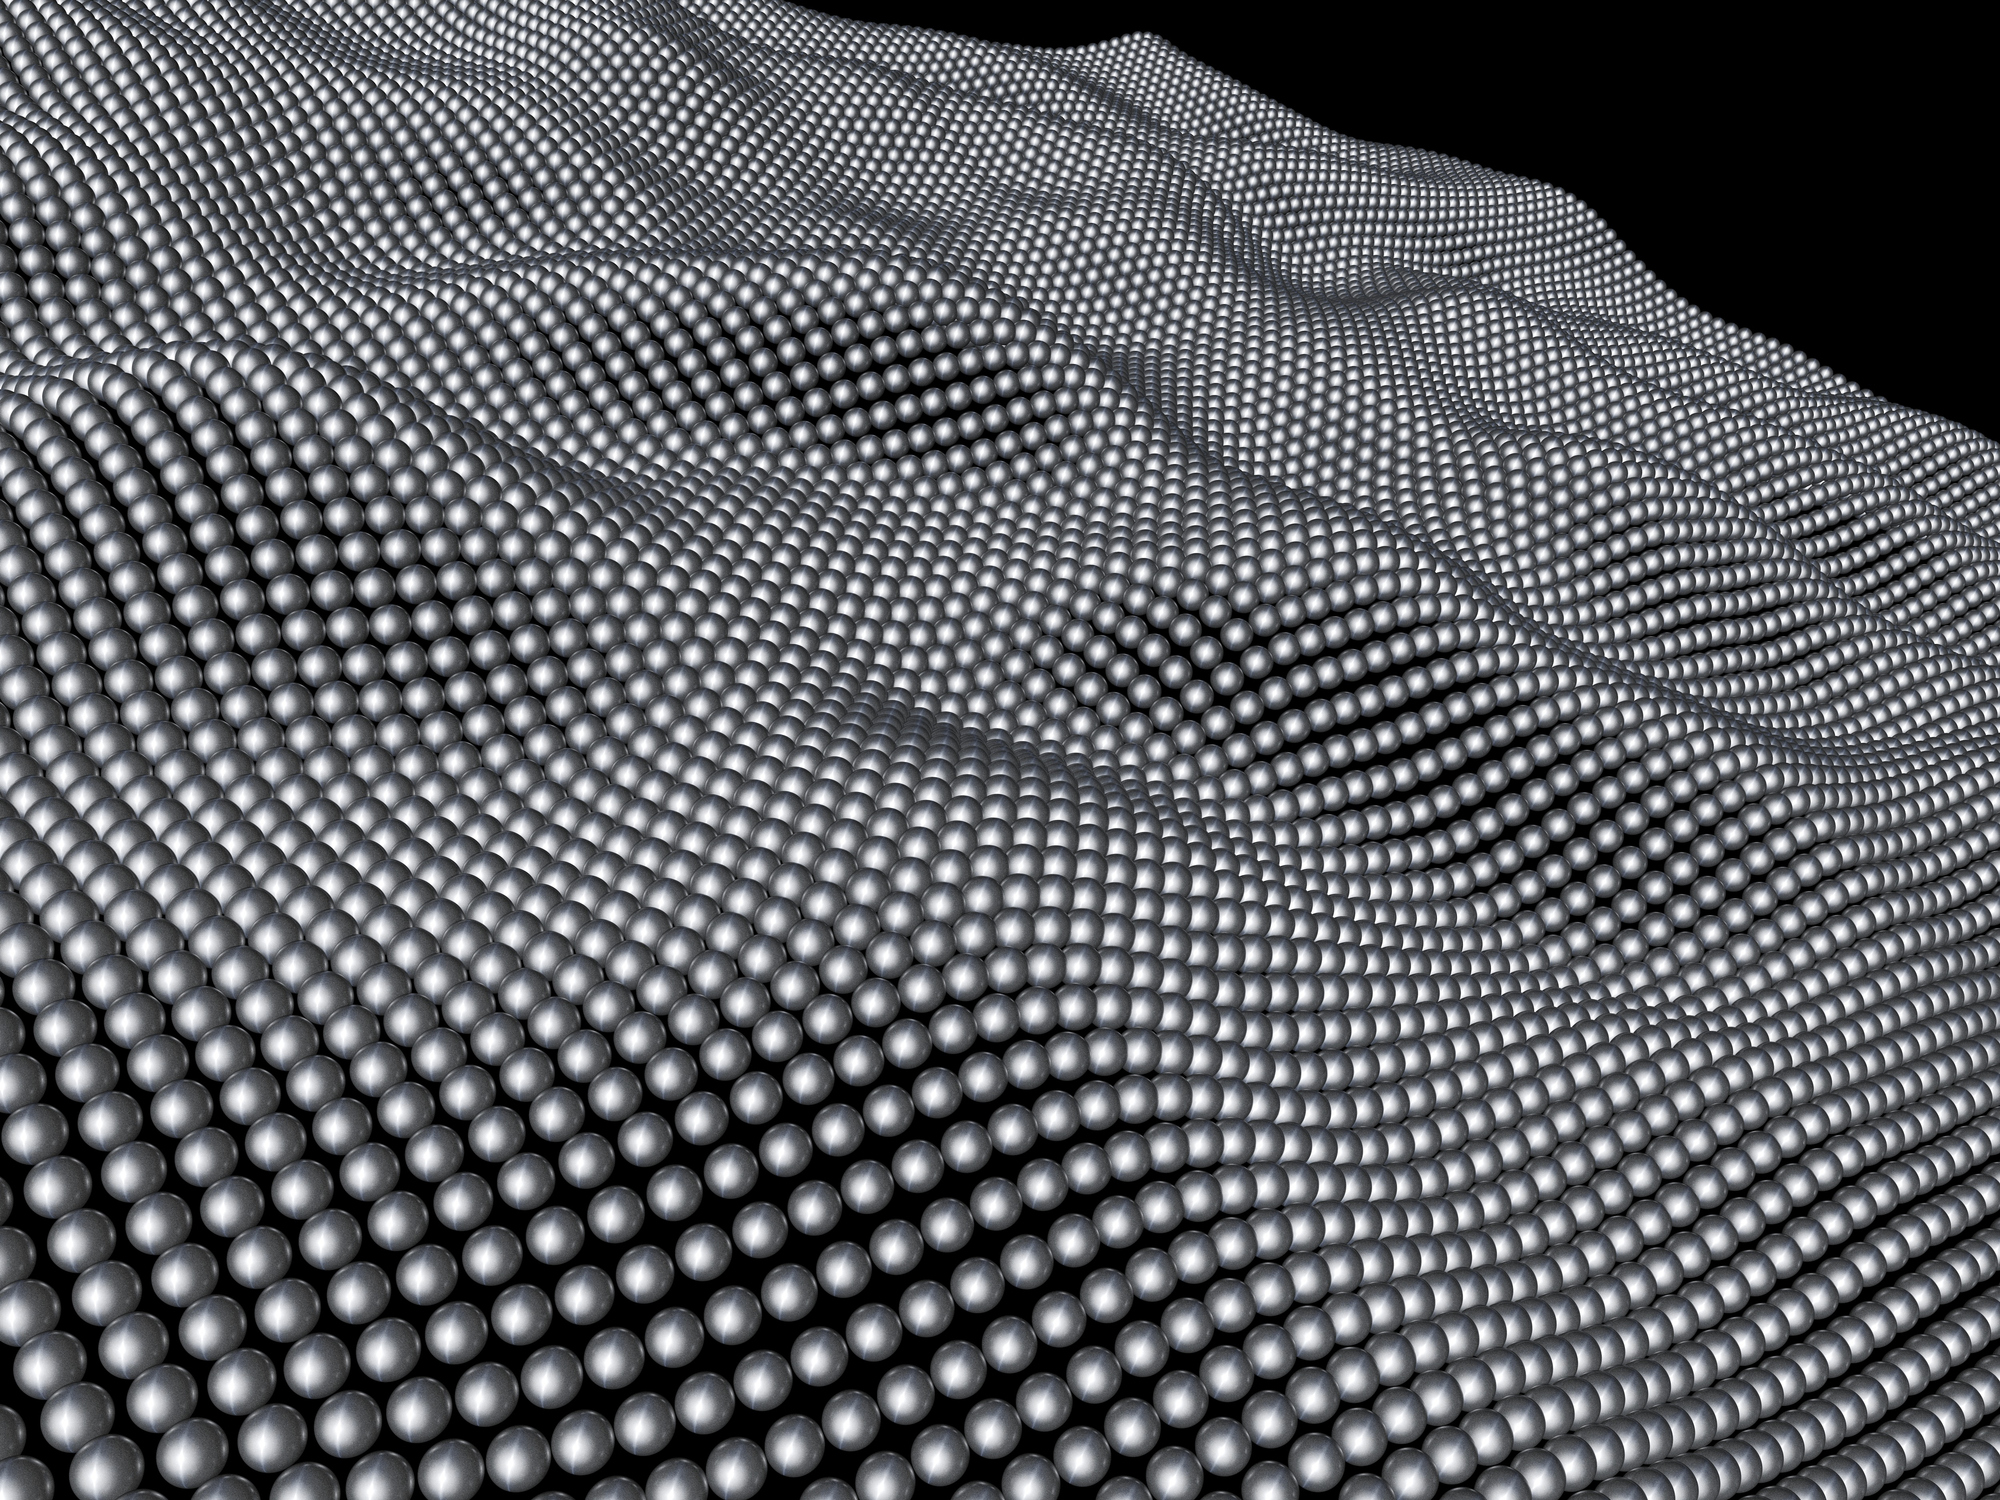 Graphene layer